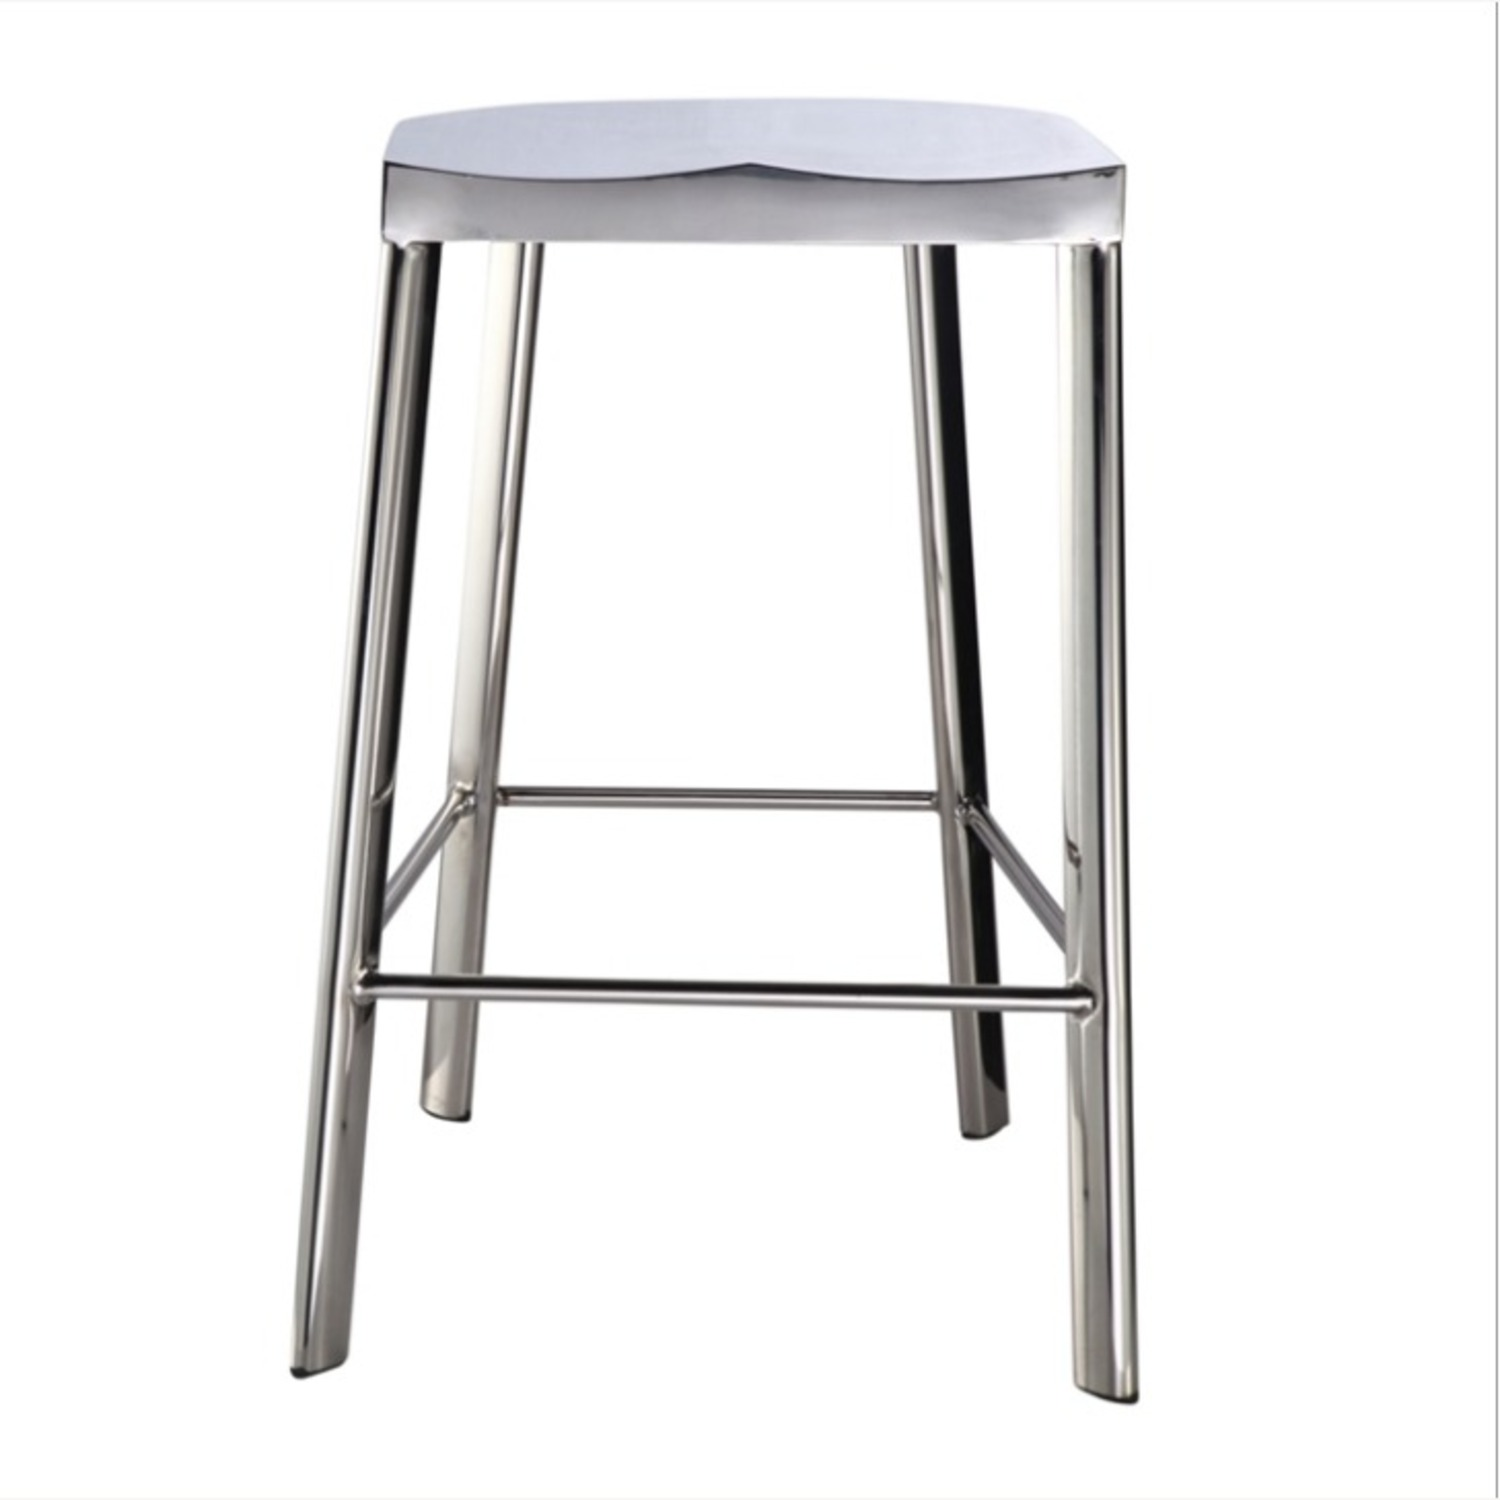 Modern Counter Stool In Silver Stainless Steel  - image-5